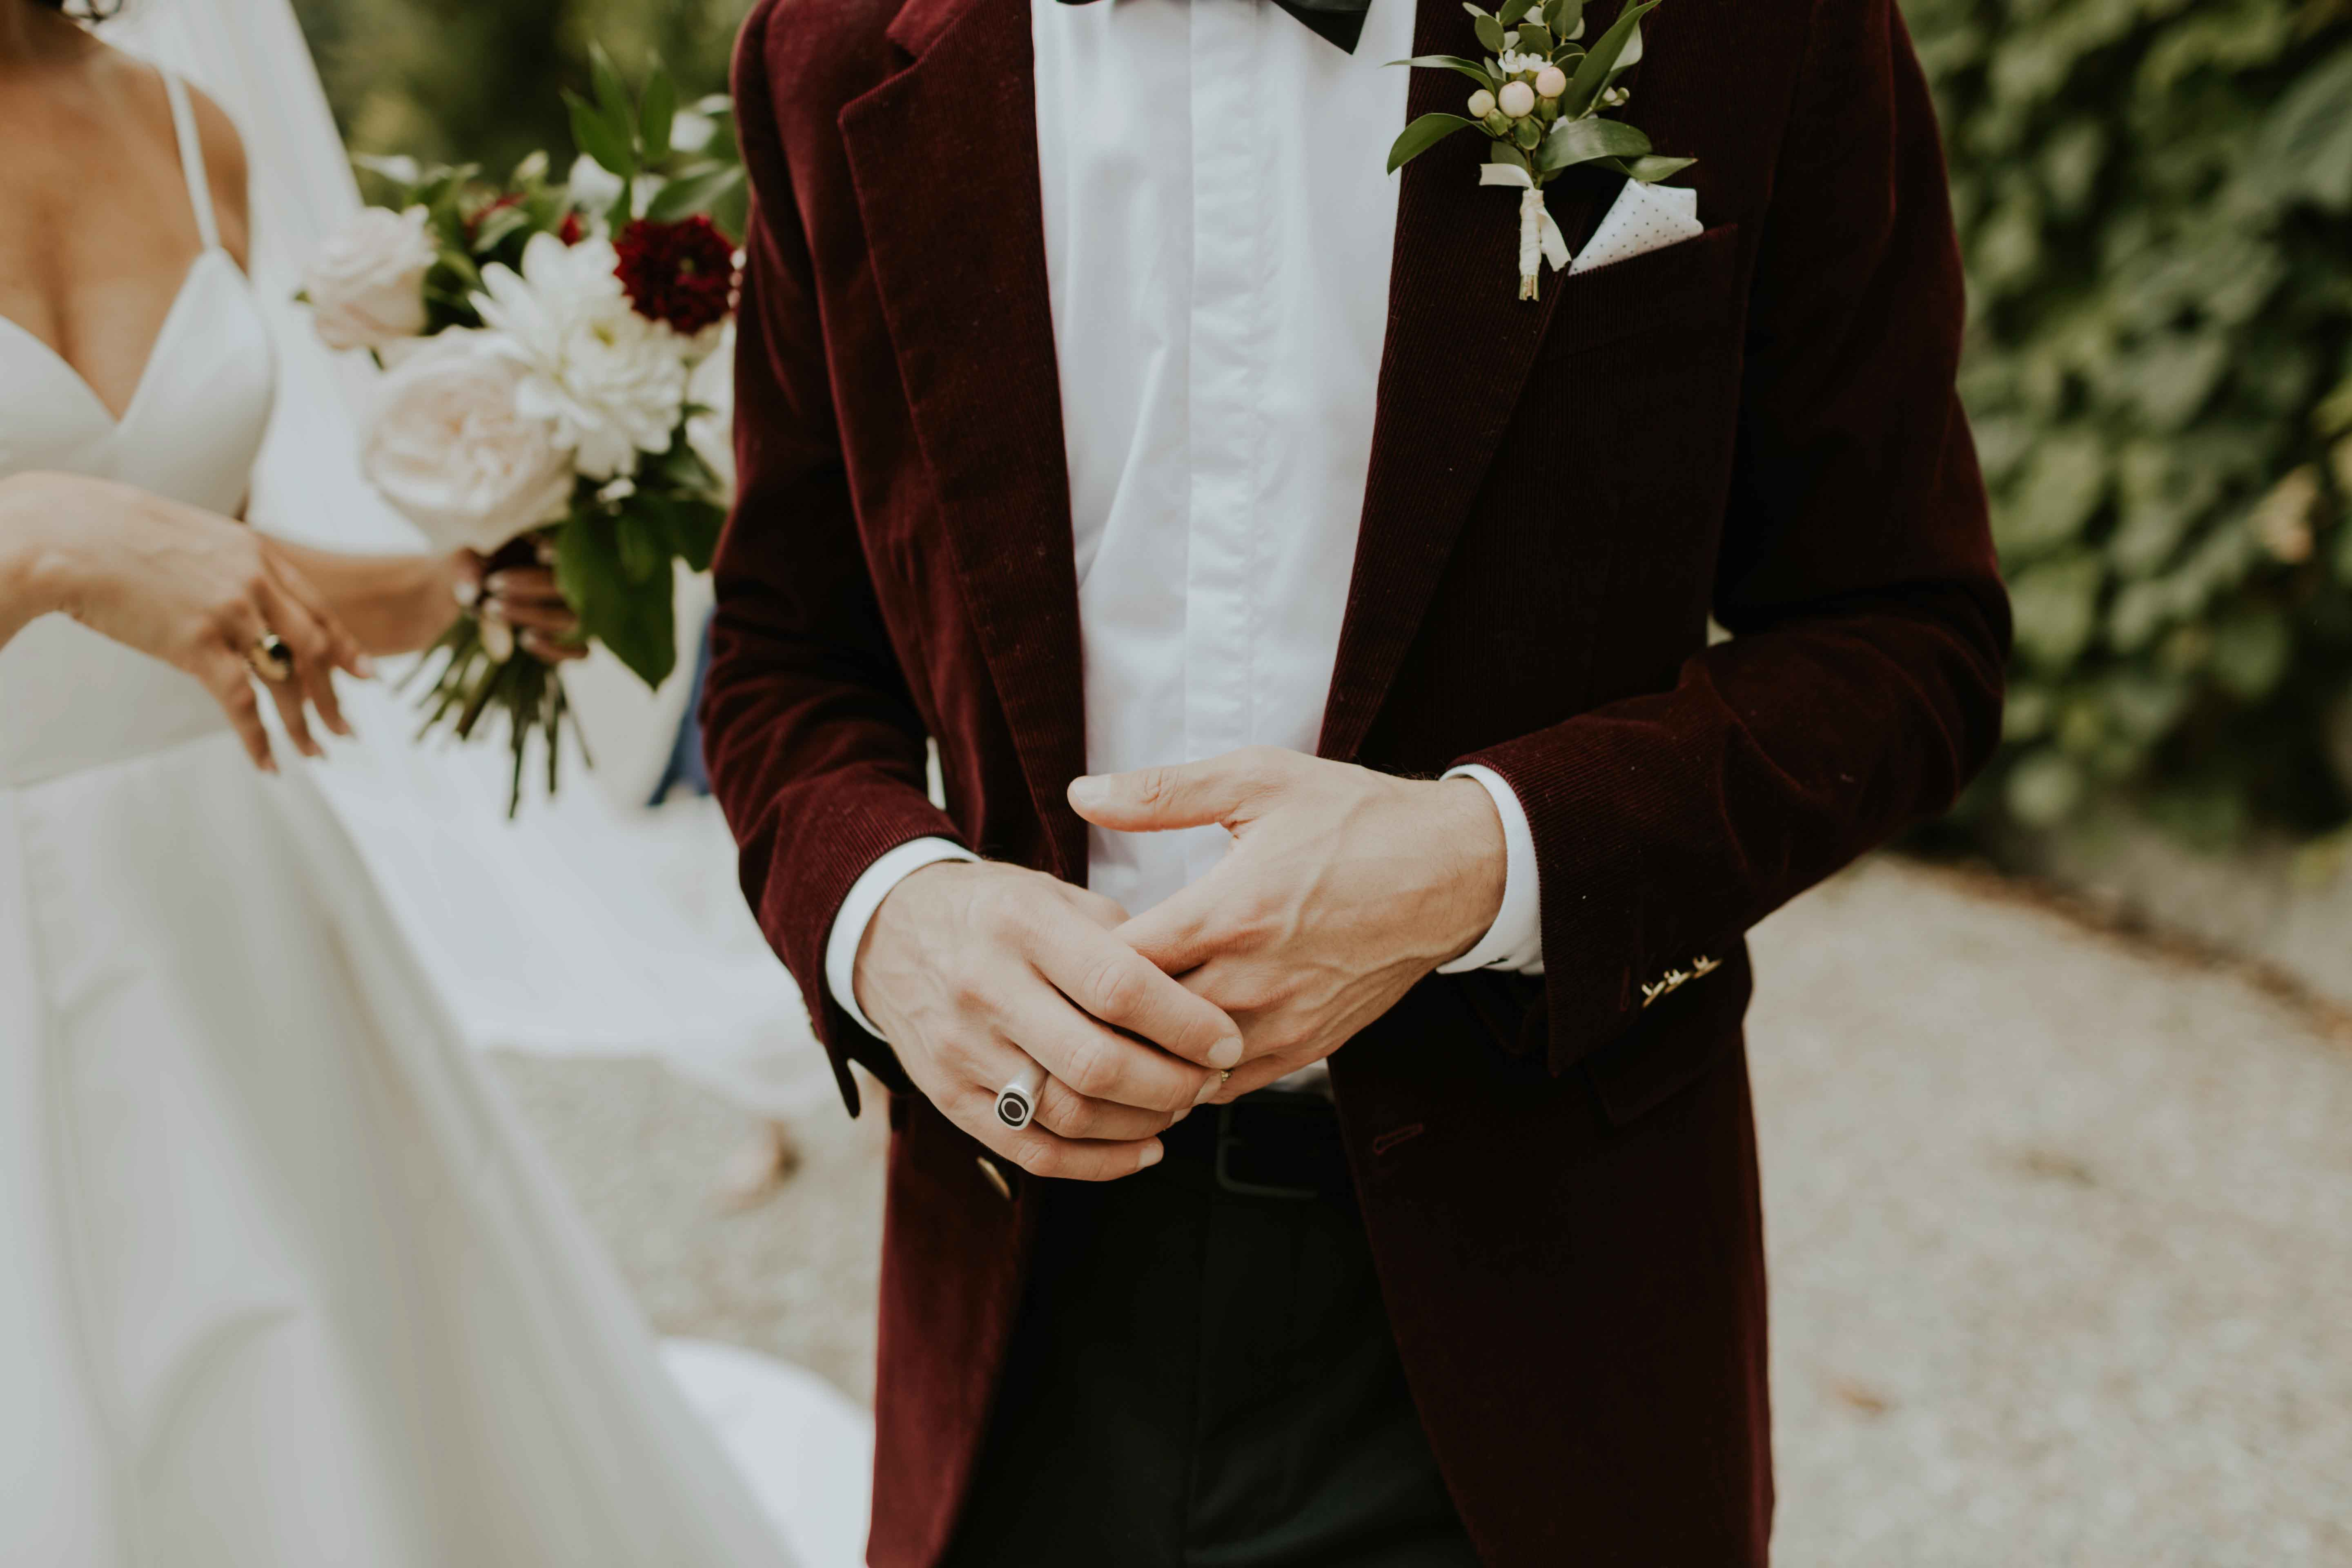 Blazer with buttonhole and bouquet.